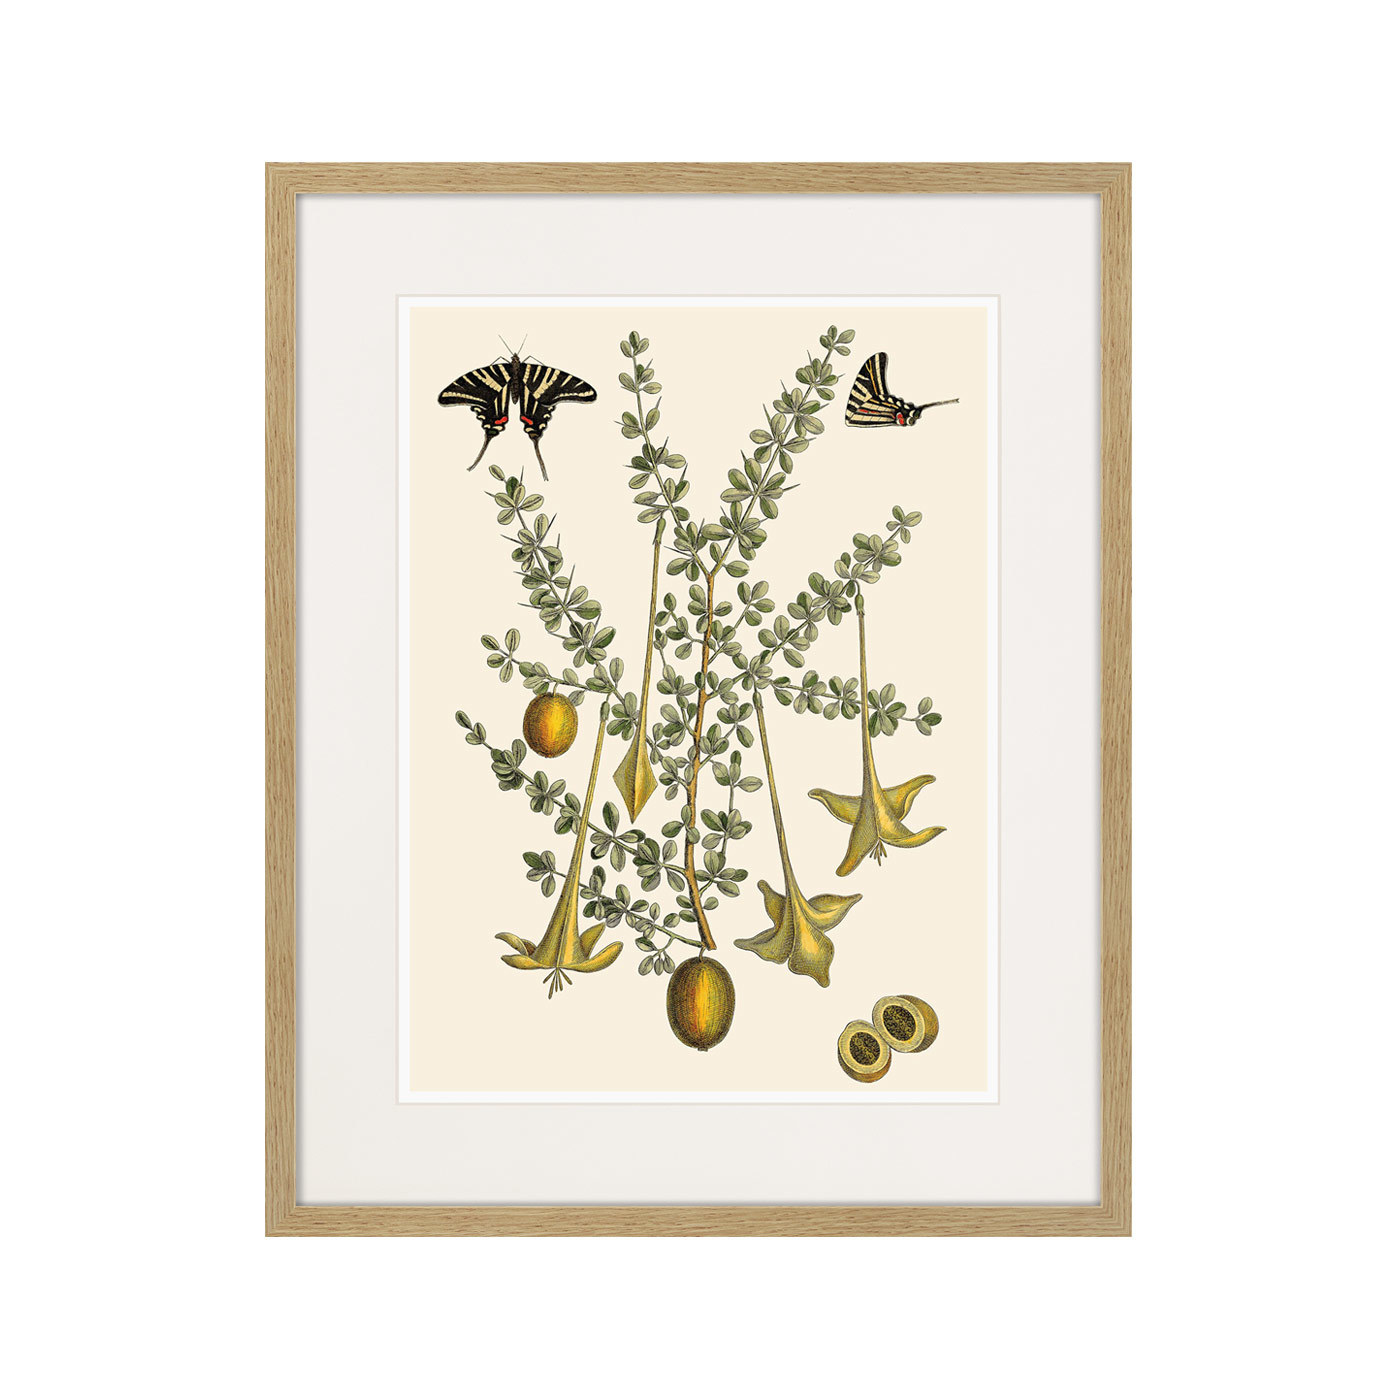 Juicy fruit lithography №1, 1870г.